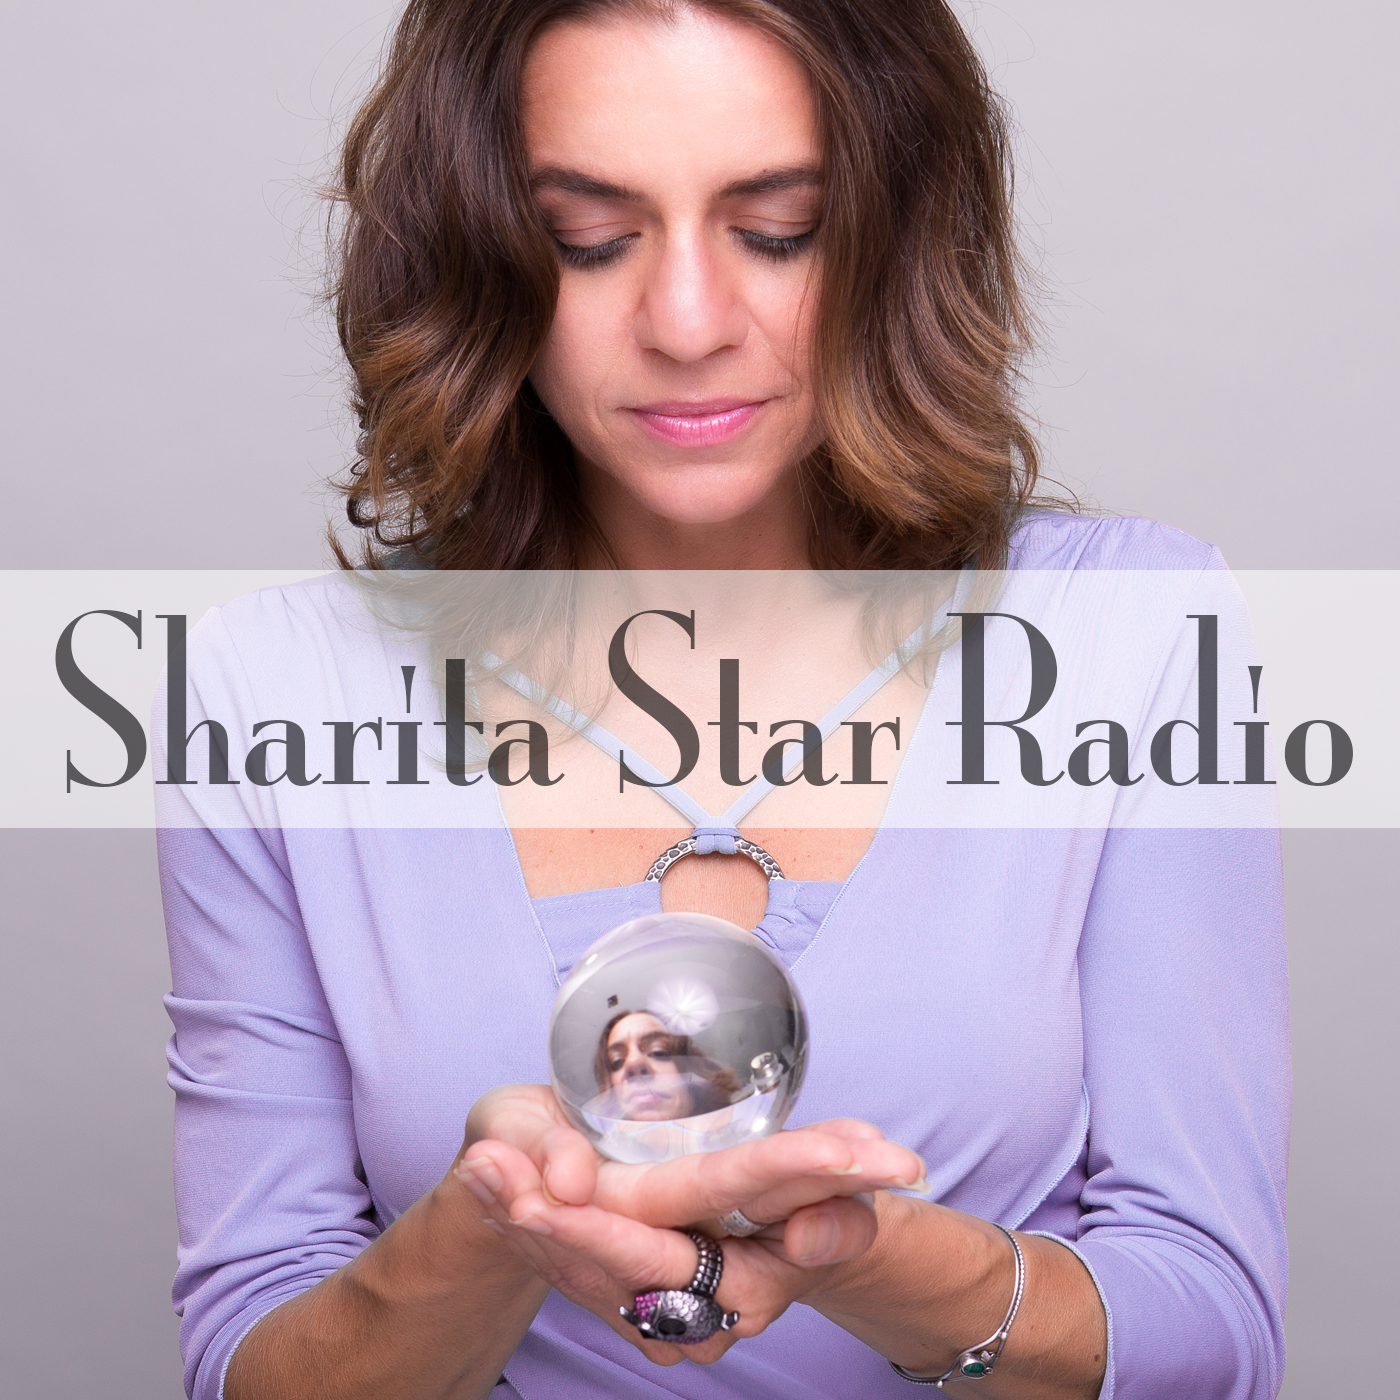 Sharita Star Radio